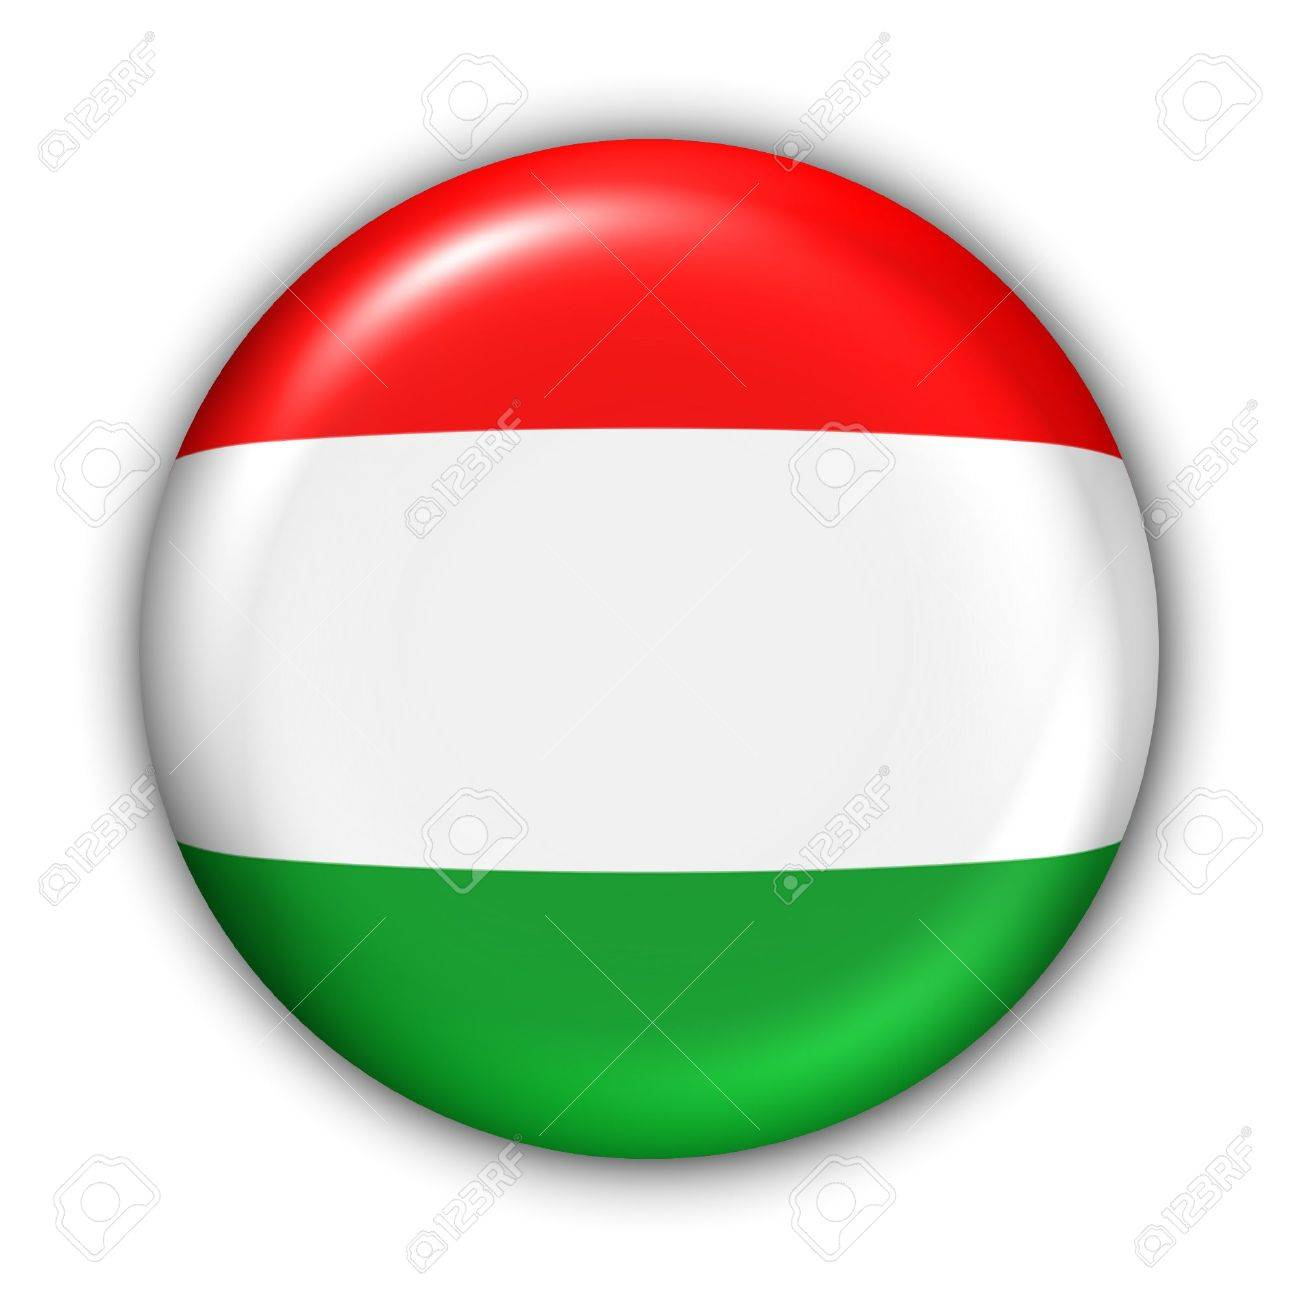 World Flag Button Series - Europe - Hungary(With Clipping Path) - 373994